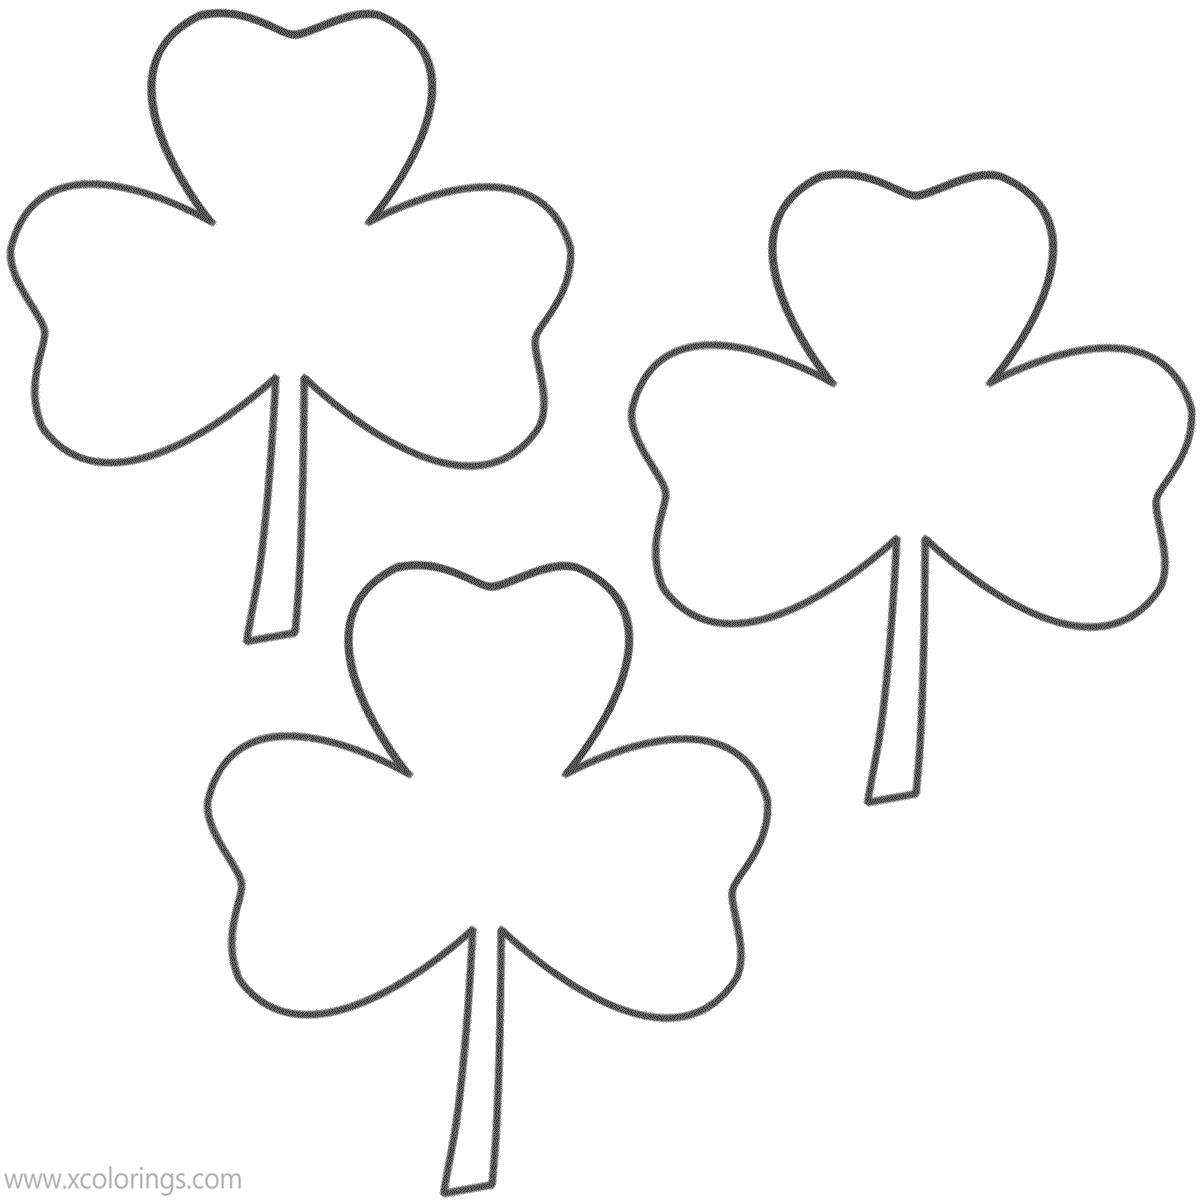 Free Three Shamrocks Coloring Pages printable